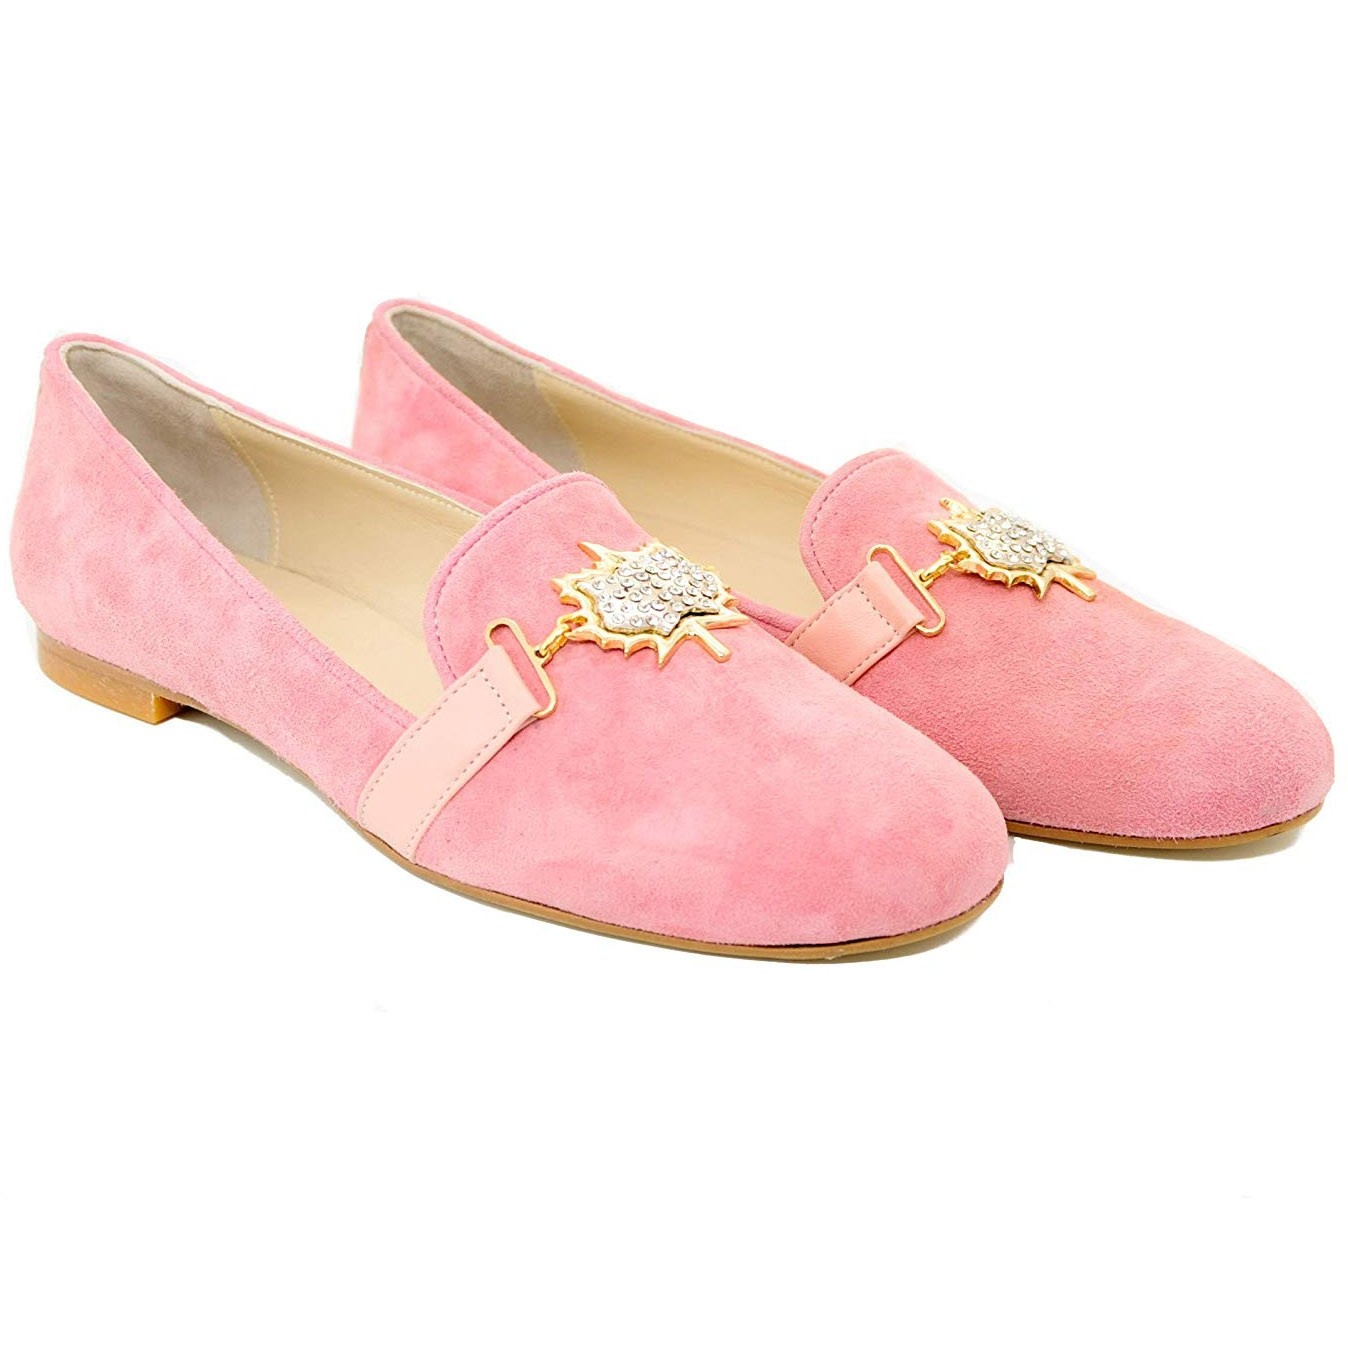 Ladies Pegia Leaf Pink Slip On Attractive Flat Suede Shoes with Jewelled Front